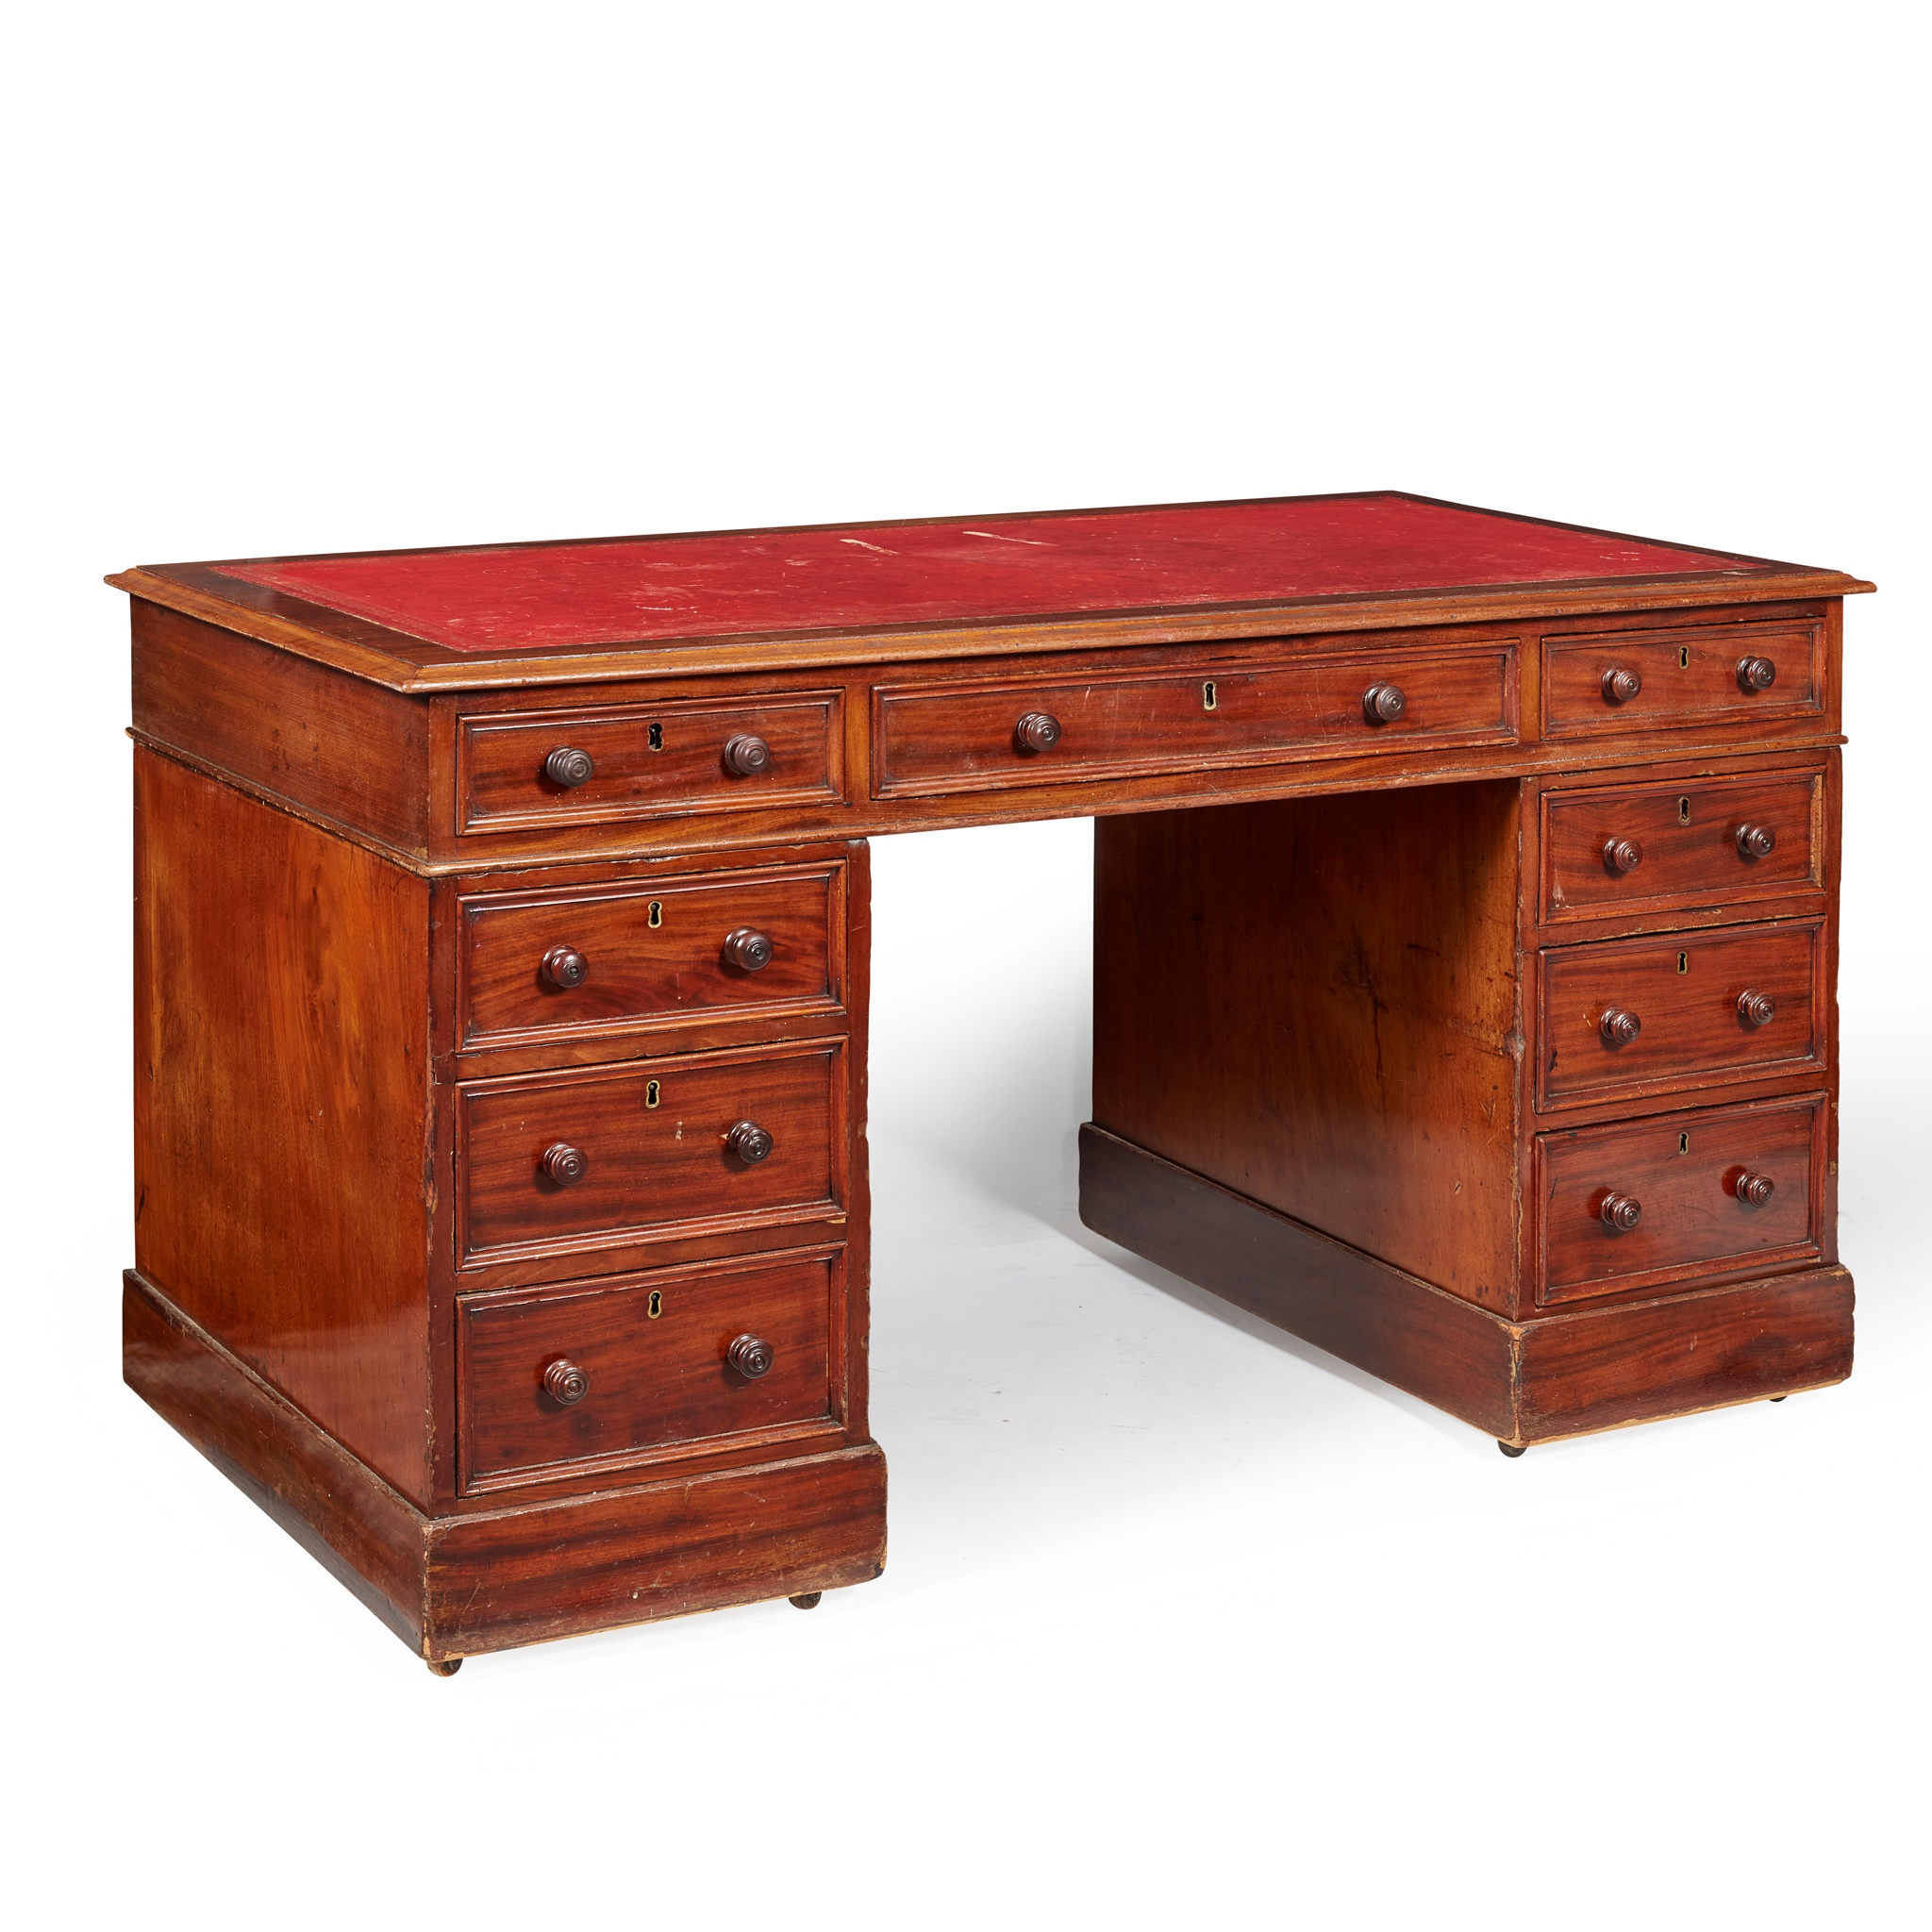 GEORGIAN STYLE MAHOGANY PEDESTAL DESK 19TH CENTURY